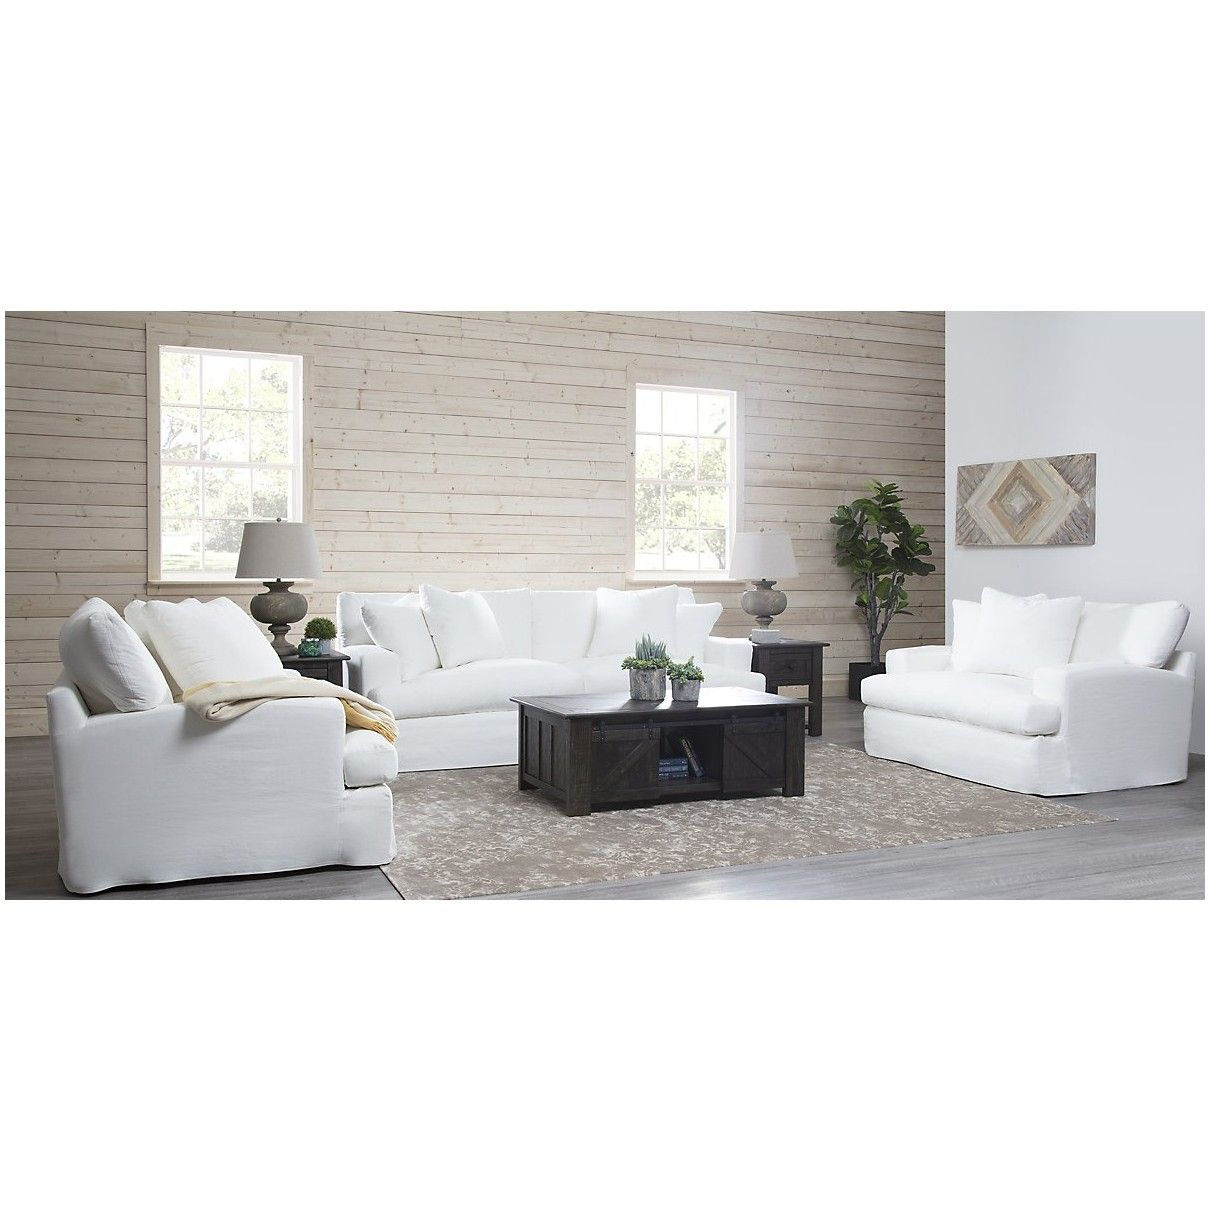 Utopia White 3 Piece Sectional Fabric Sectional Sofas 3 Piece Sectional White Sectional